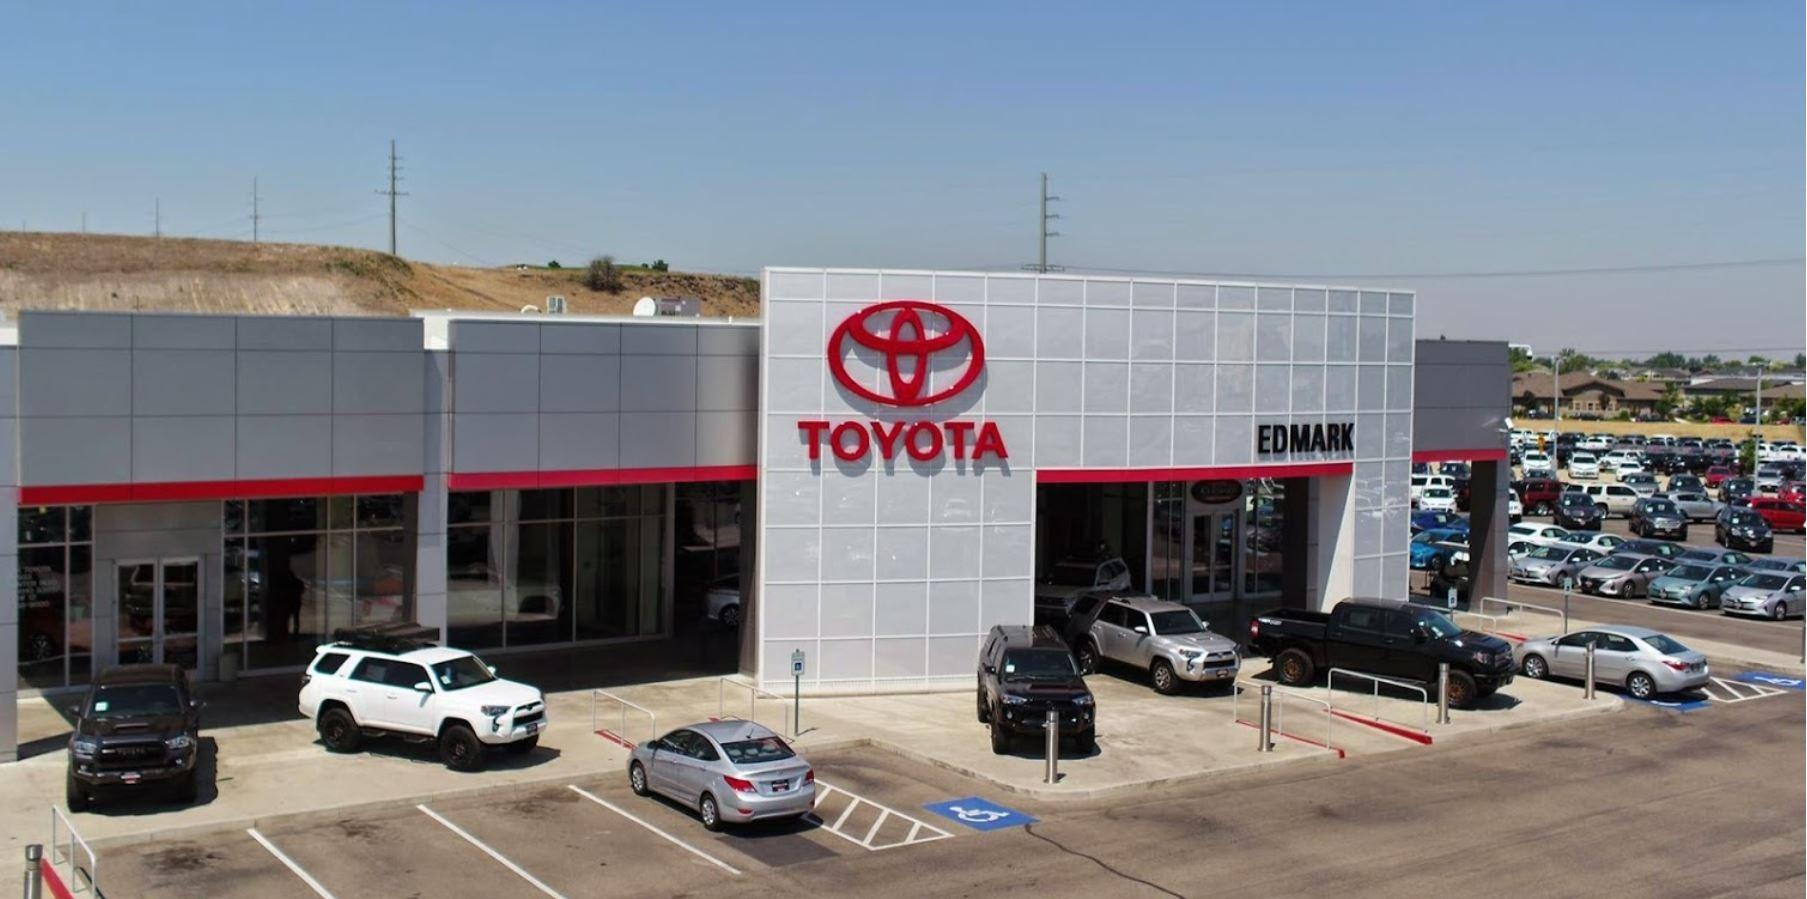 edmark toyota in nampa id auto dealers yellow pages directory inc. Black Bedroom Furniture Sets. Home Design Ideas